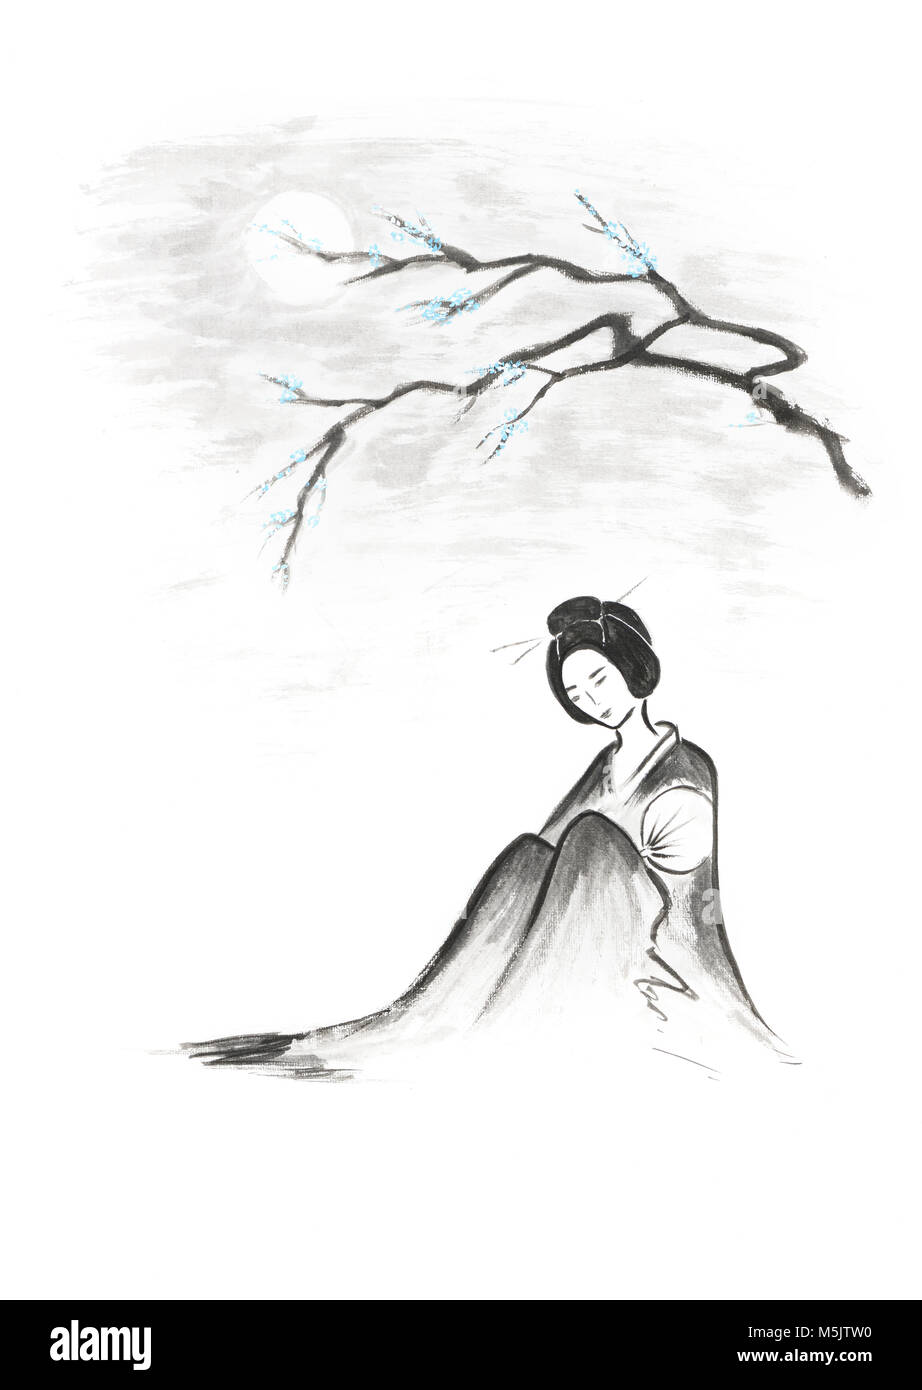 Geisha Painting Stock Photos Images Alamy Moonlit Eyeliner Fin Beautiful Thoughtful Sitting Under Sakura Branch In The Moonlight Artistic Oriental Style Illustration Japanese